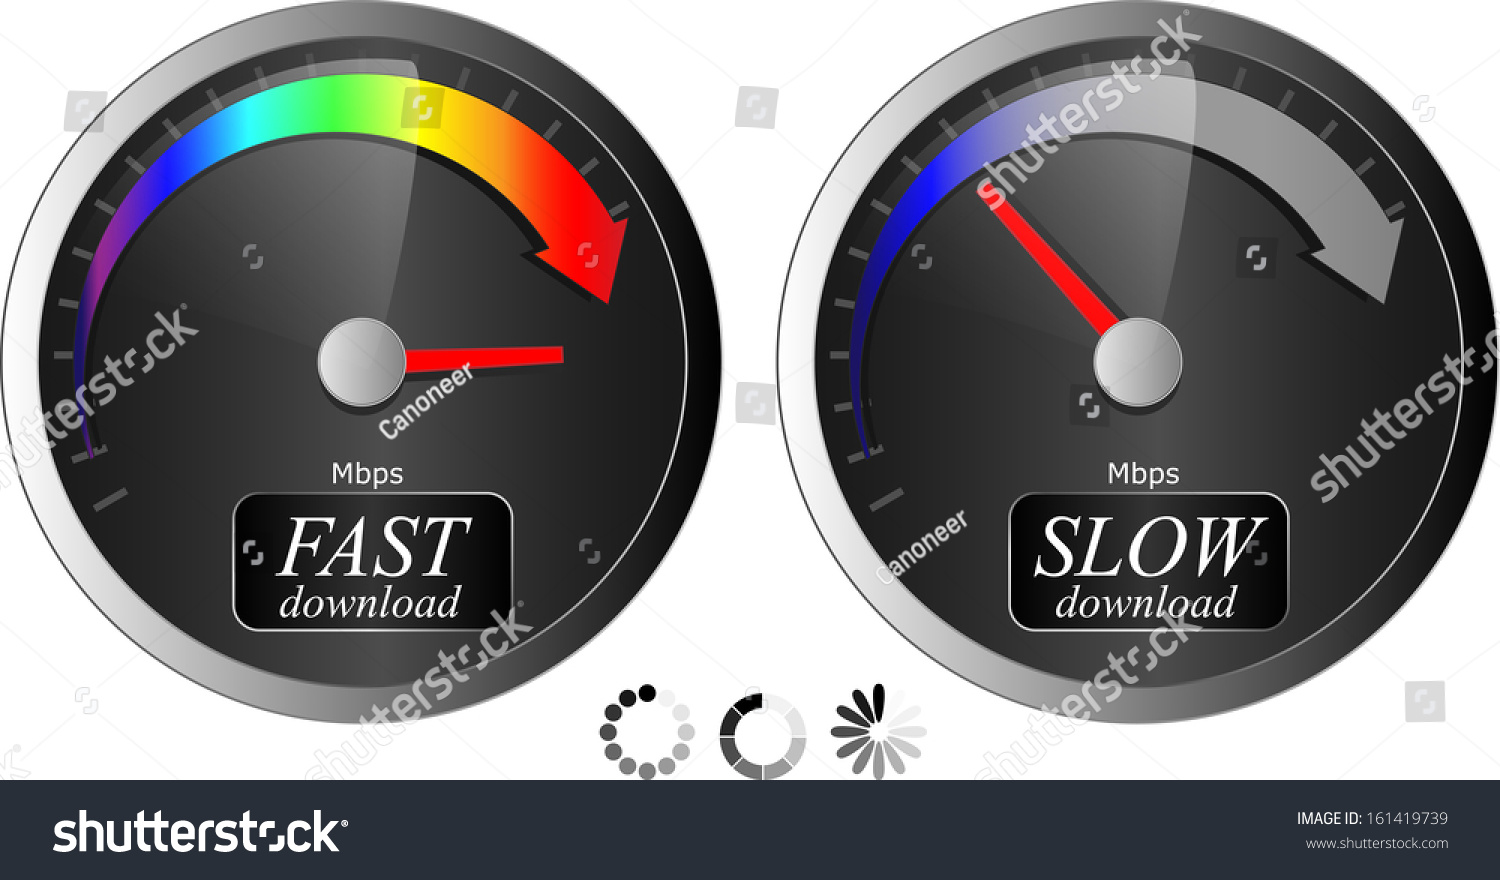 My download speed is now very slow yet I still have a fast upload speed. Can you help me?